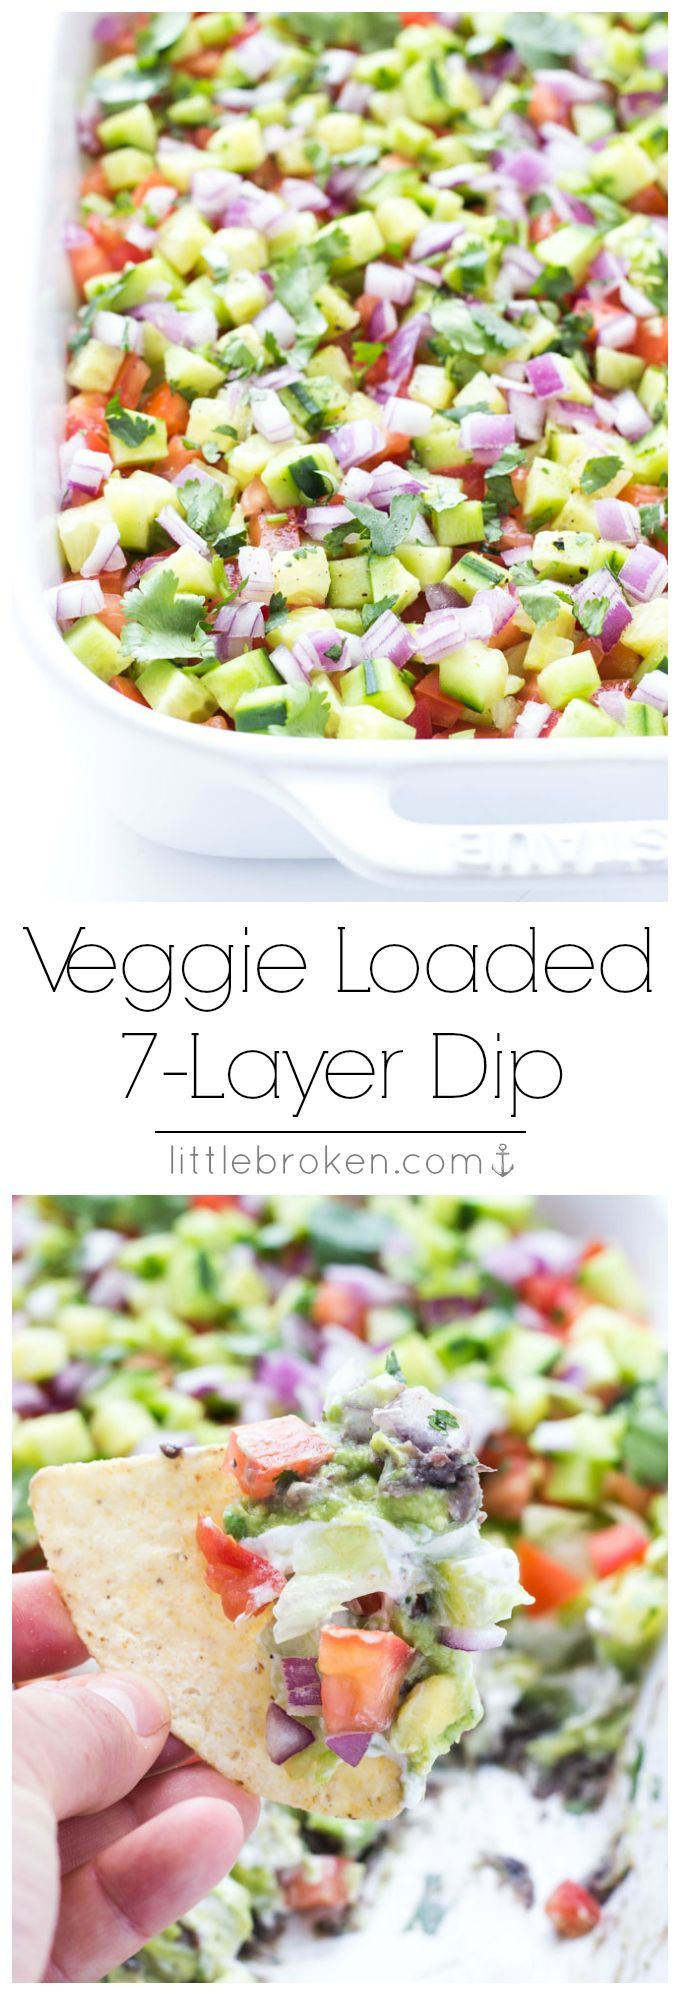 Healthy 7-layer appetizer without any processed canned stuff. Just simple, real food. | littlebroken.com @littlebroken